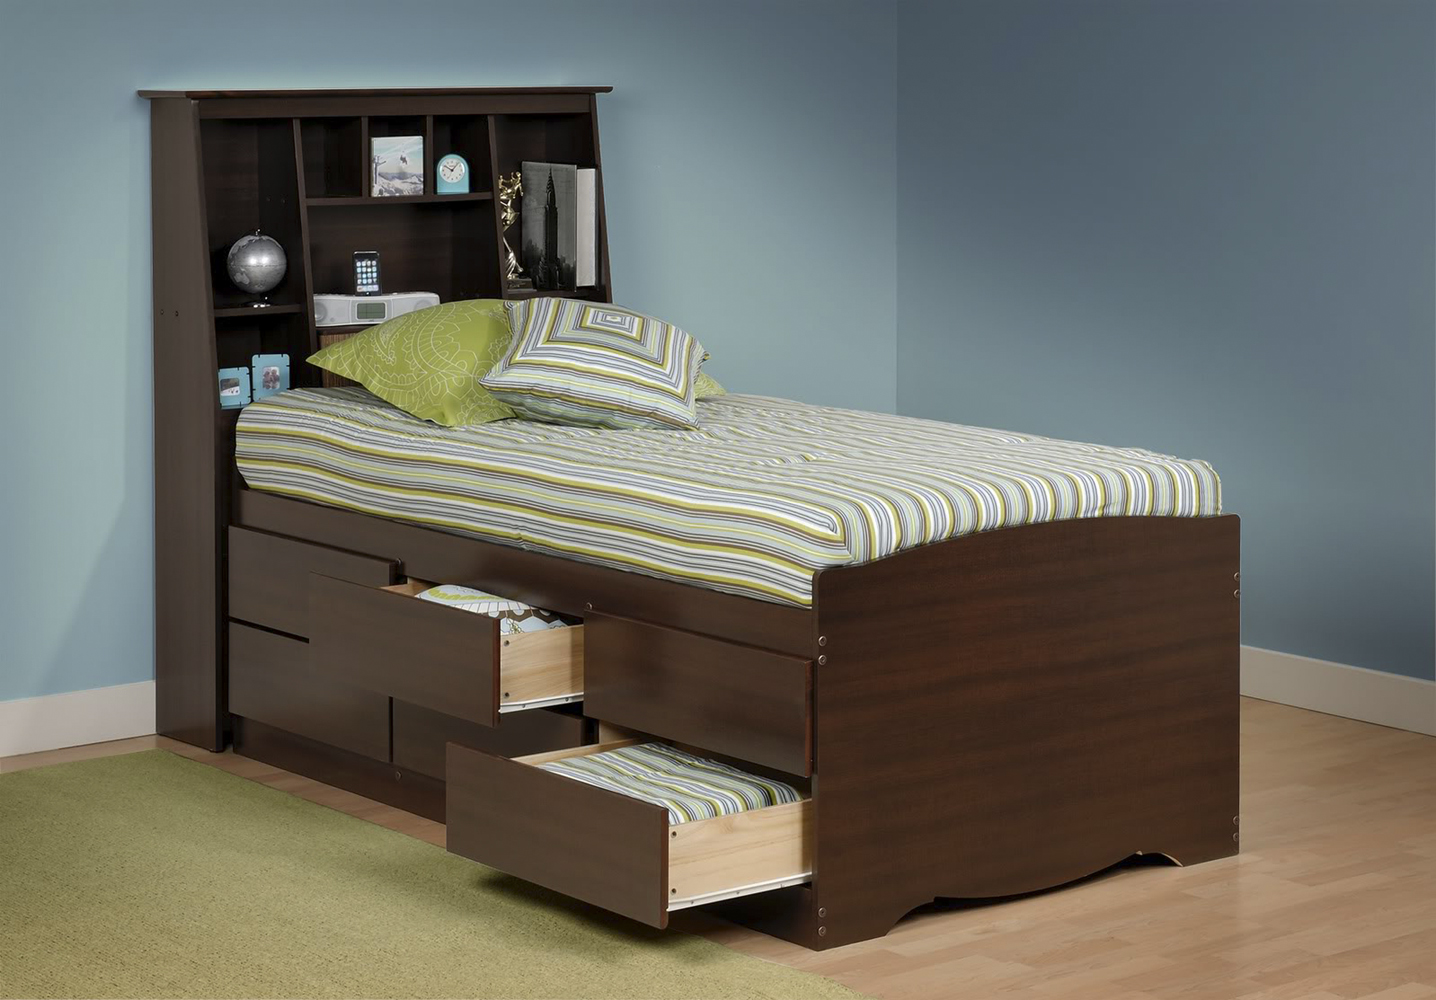 Bed With Headboard Storage Tall